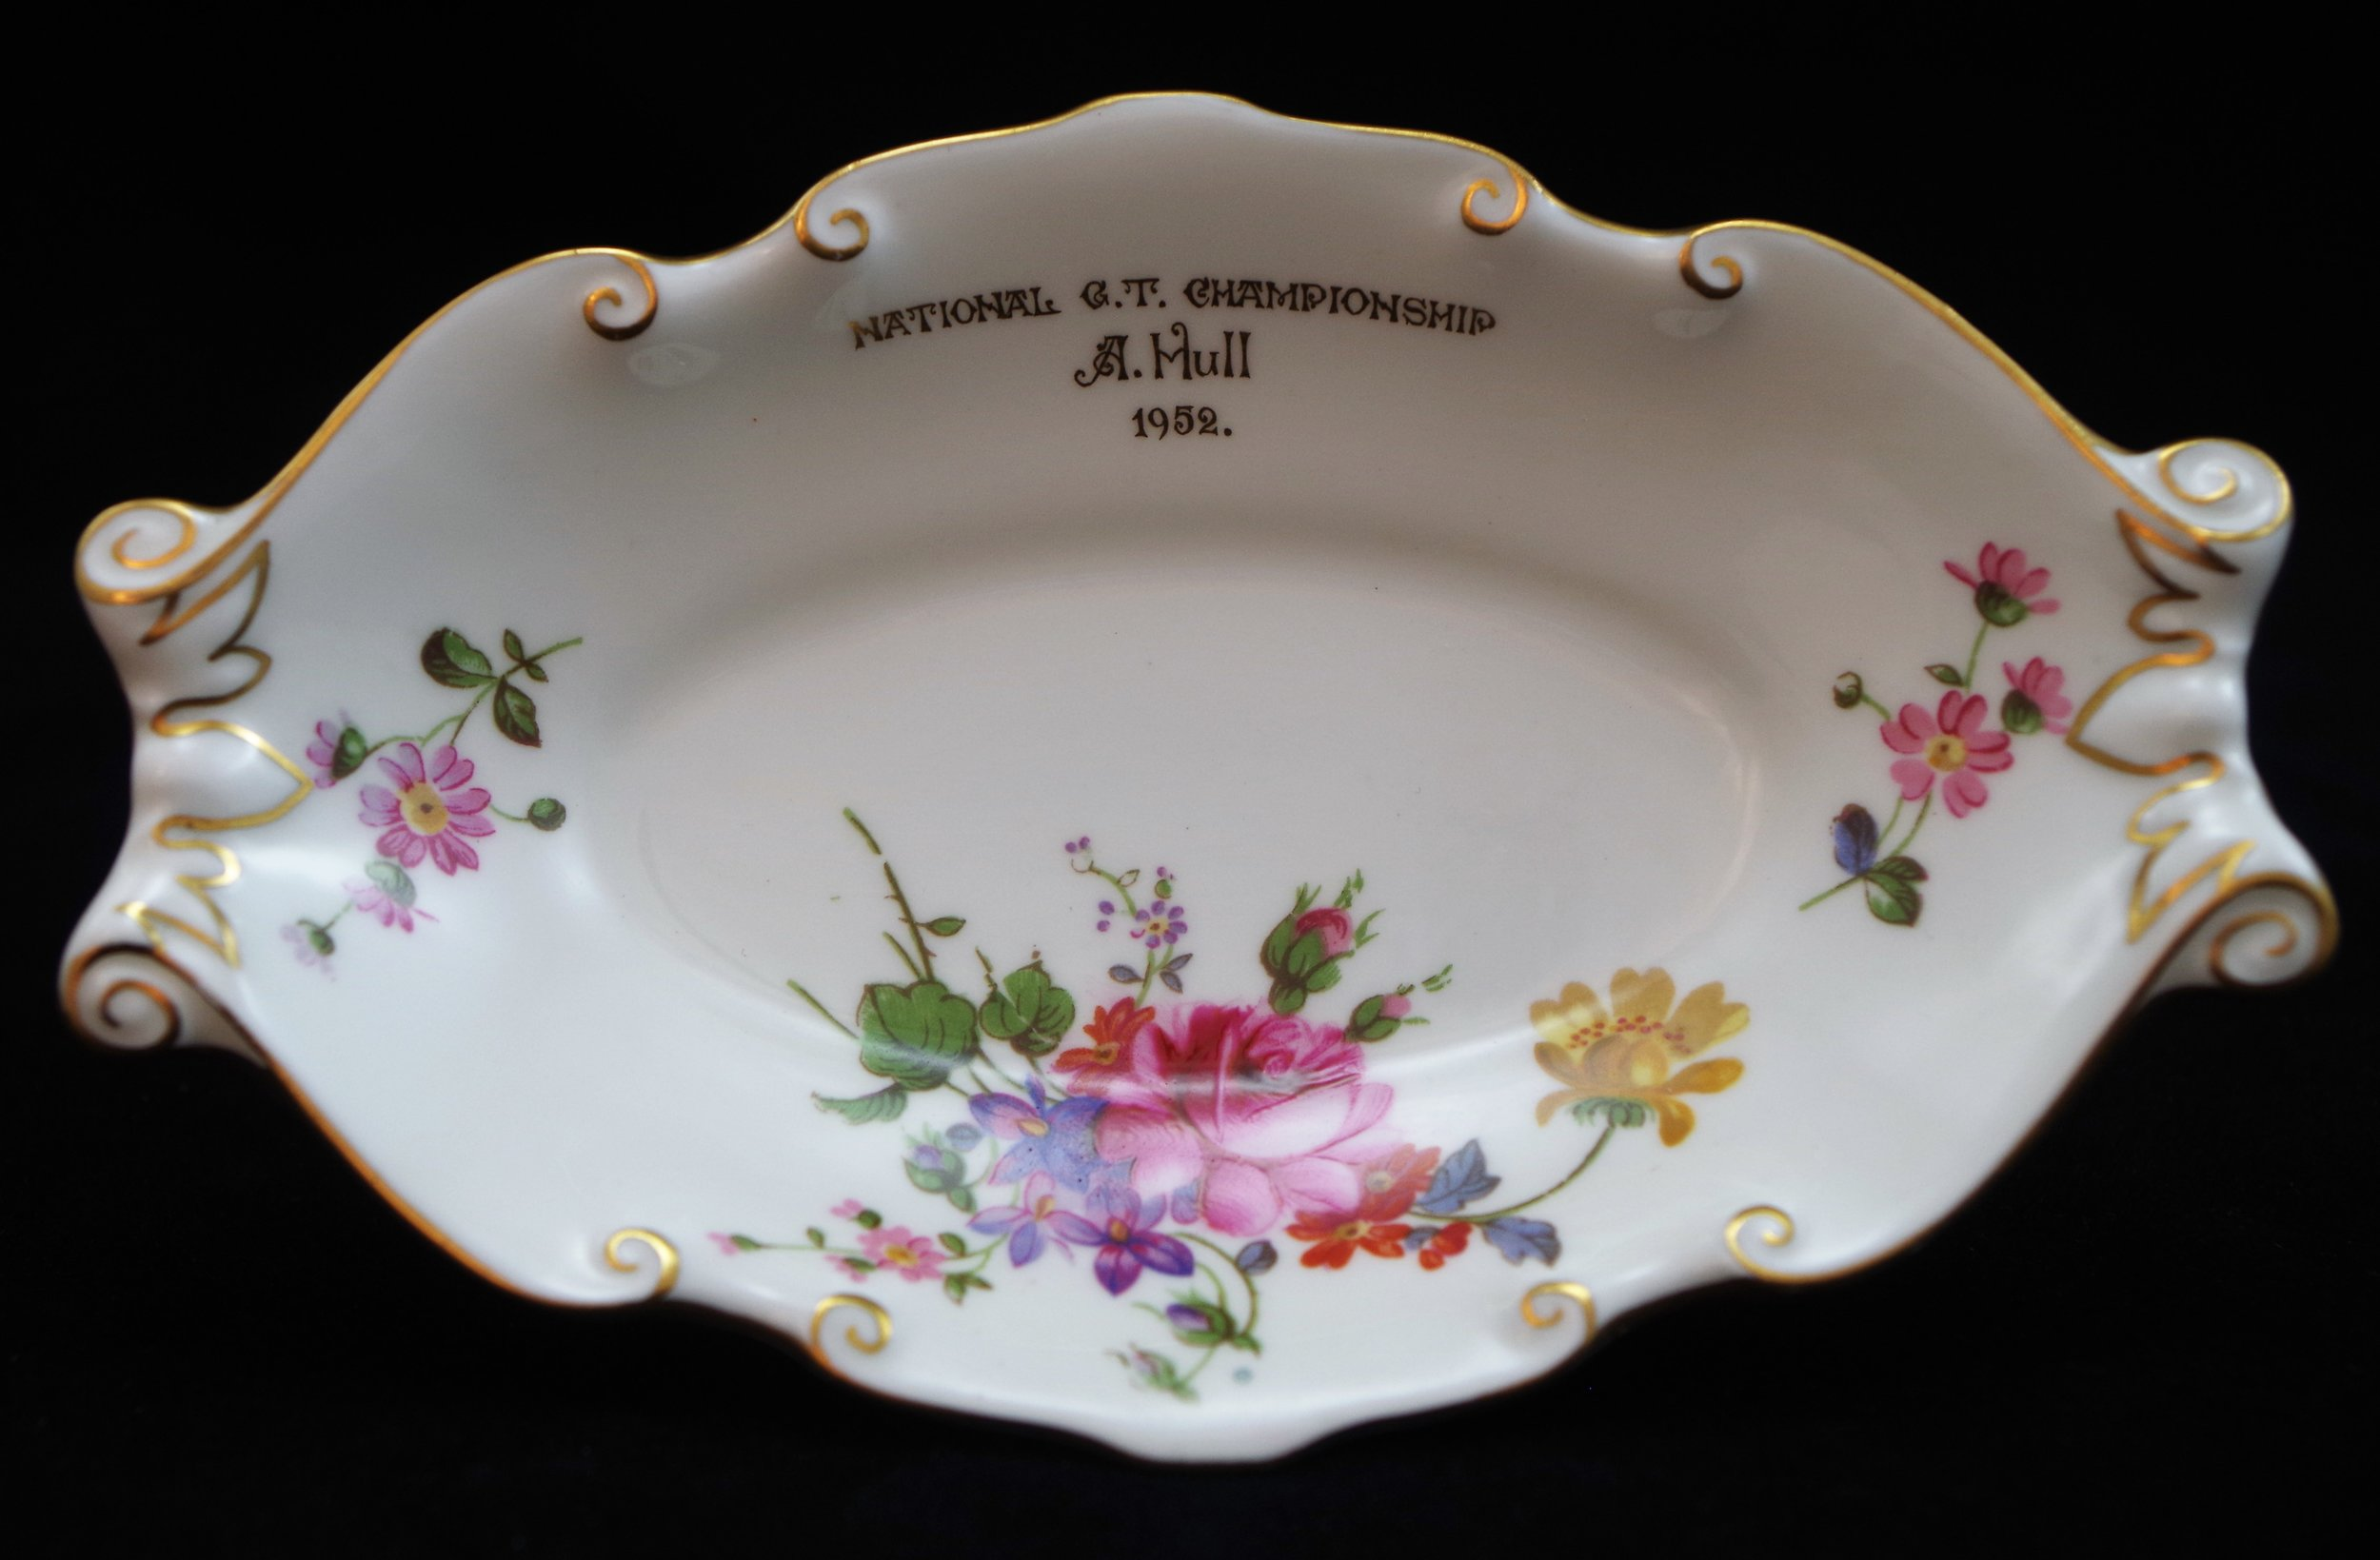 royal-crown-derby-silver-sweet-derby-posie-A-Hull-1952-G-T-championship-A228